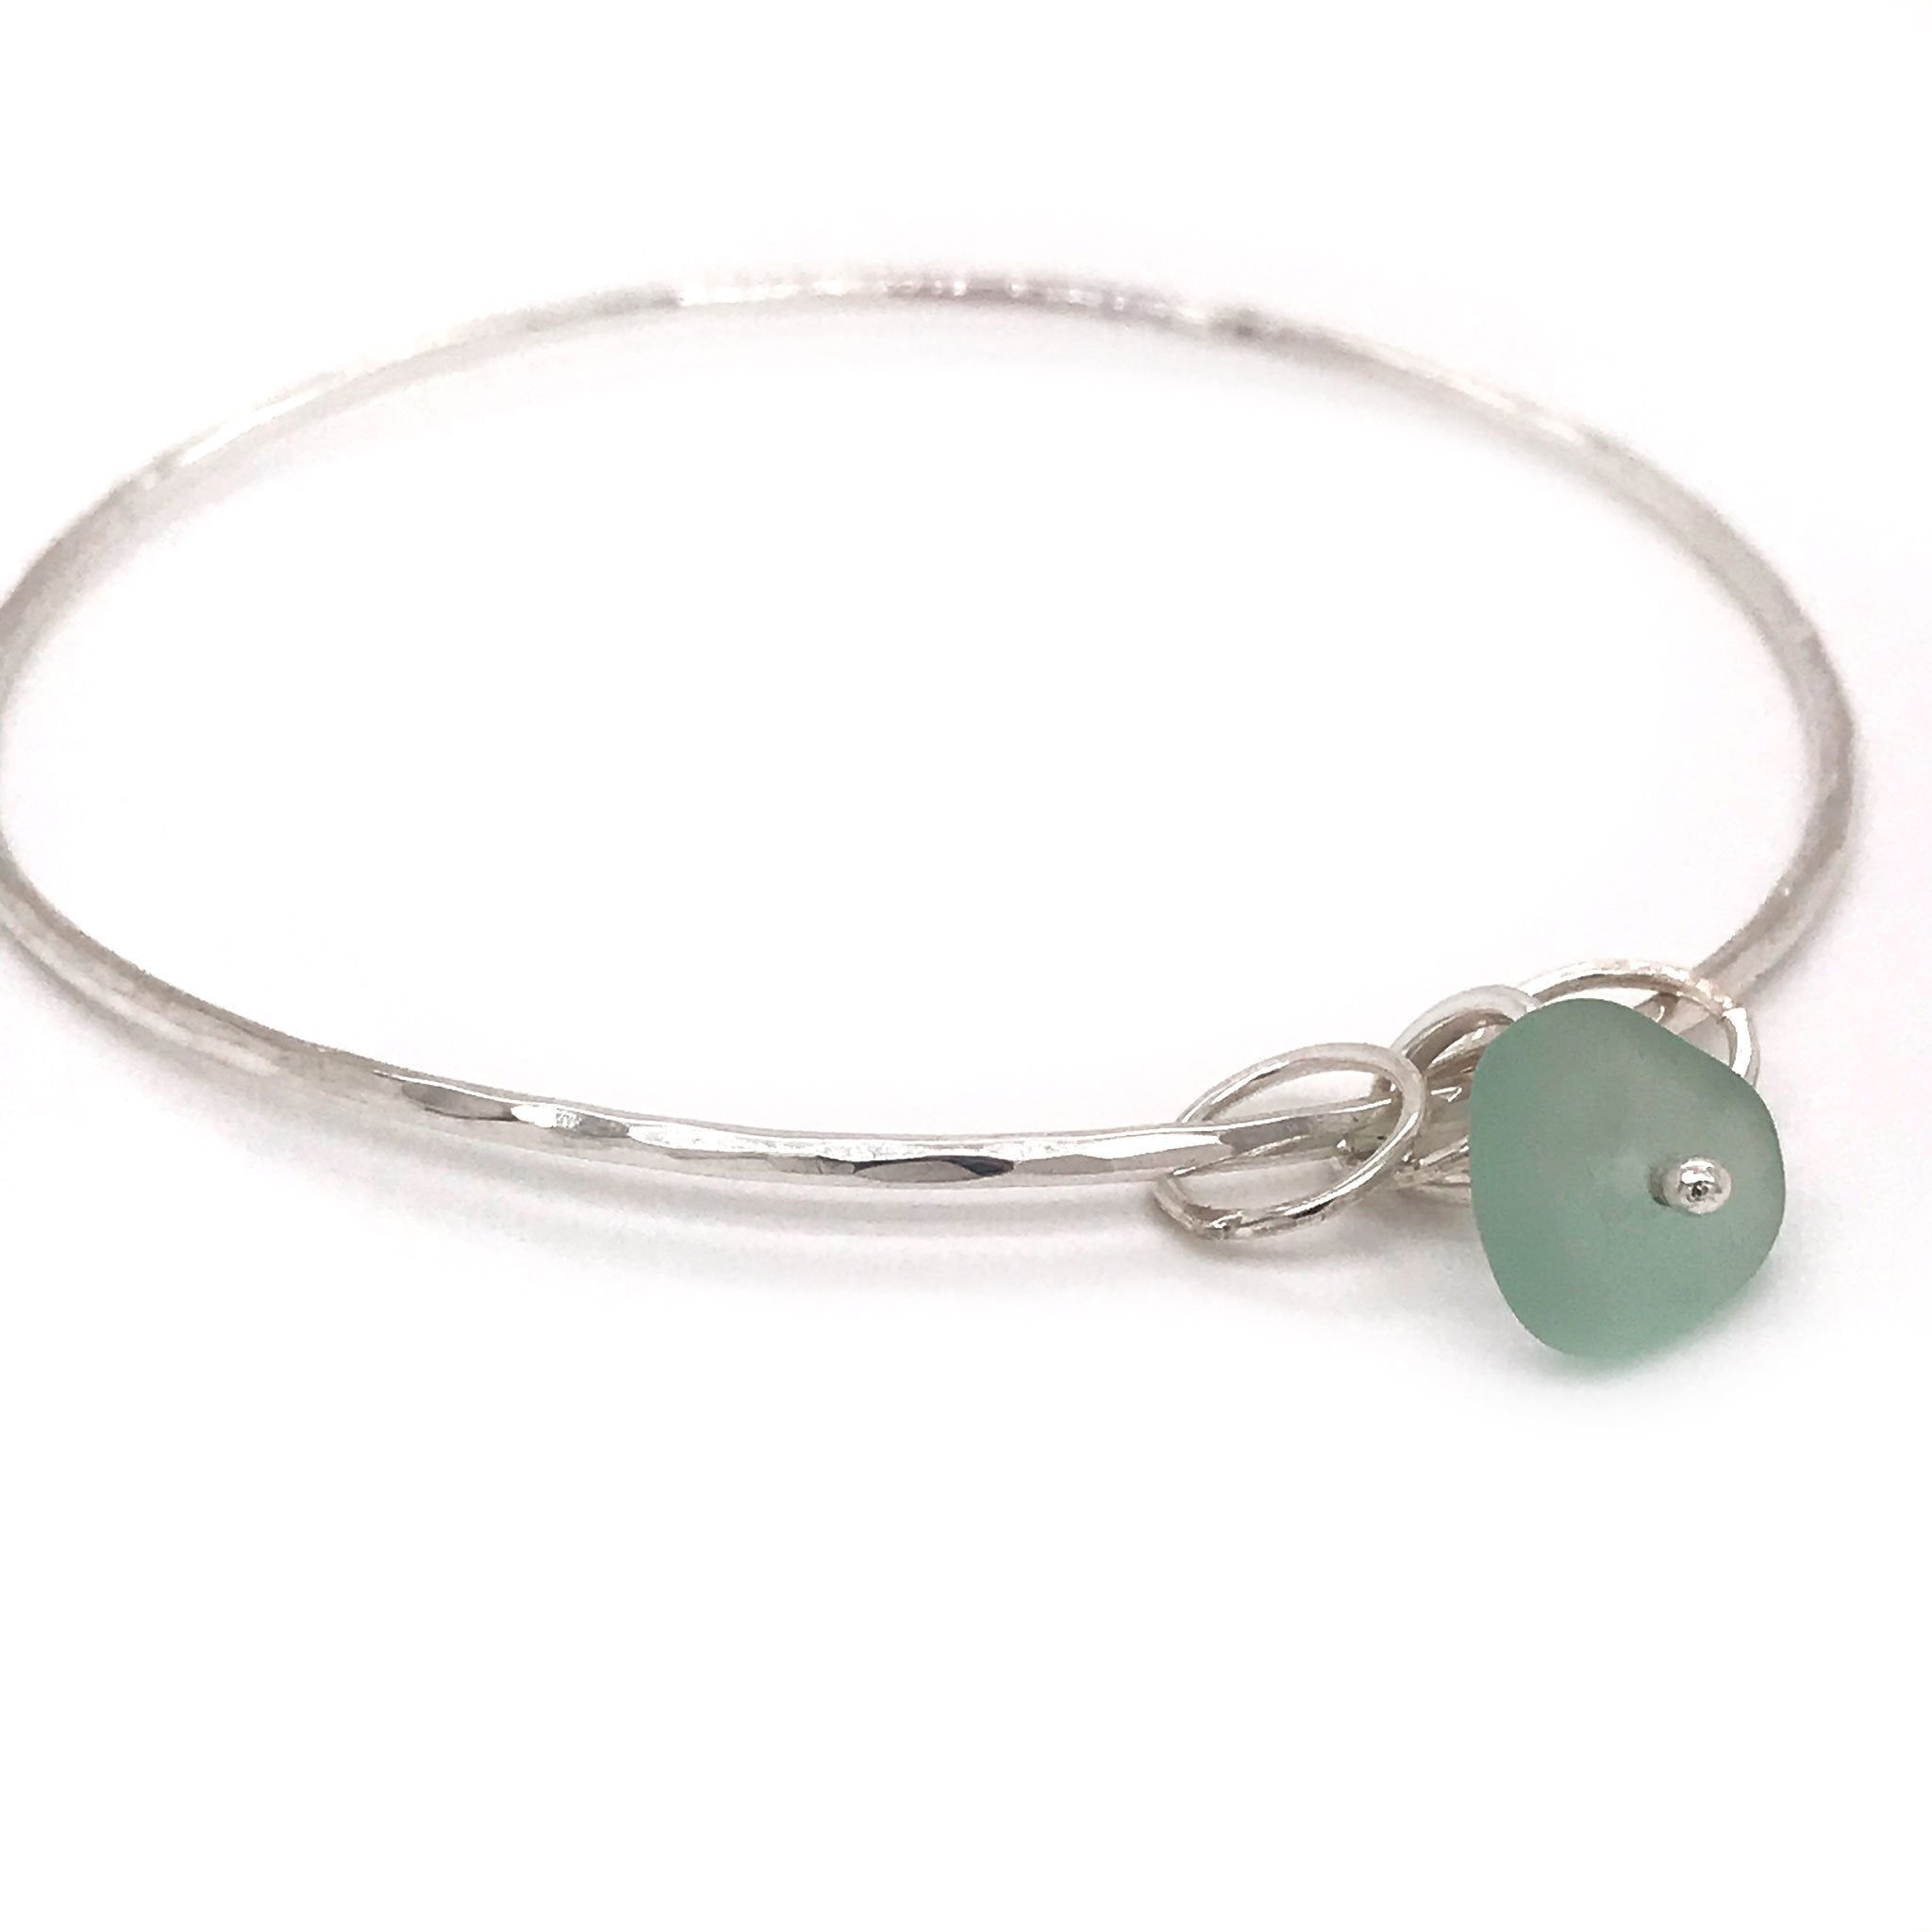 seafoam seaglass bangle sterling silver kriket broadhurst jewellery